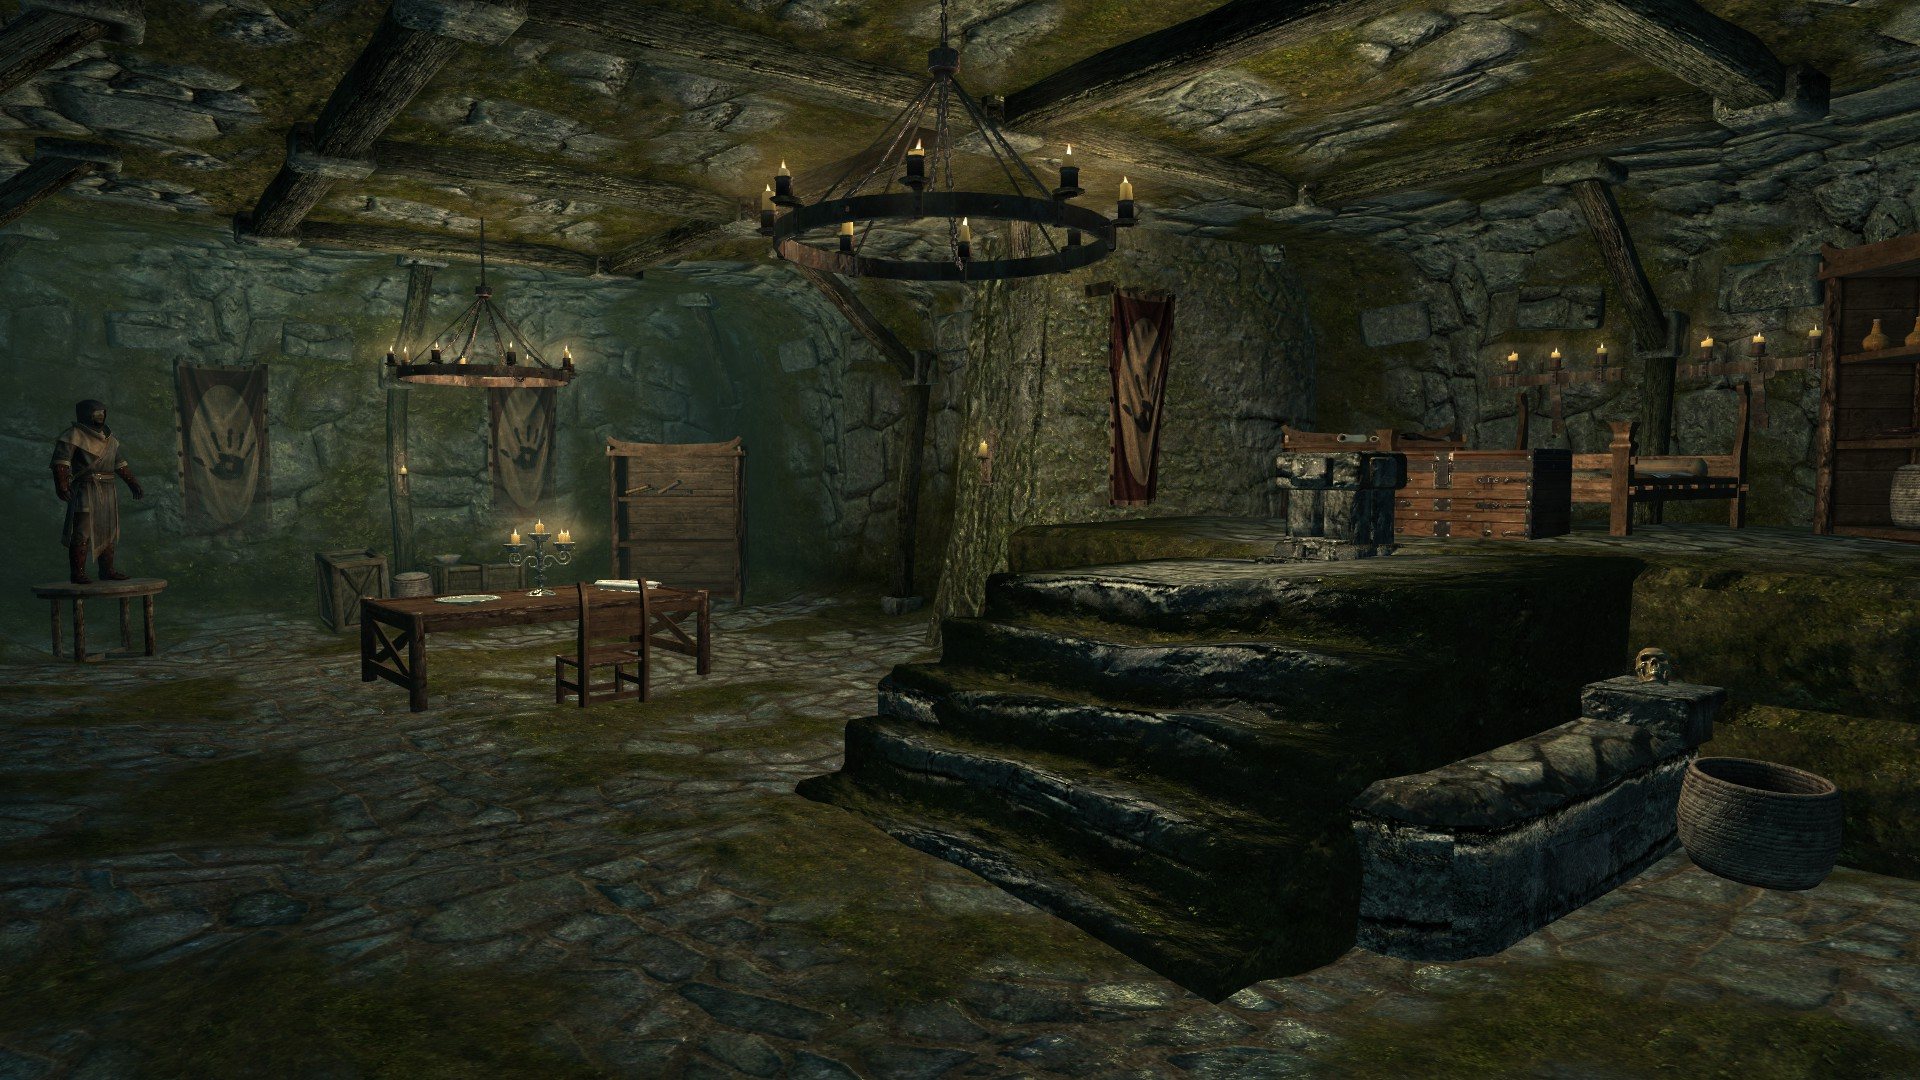 skyrim_db_dawnstar_sanctuary